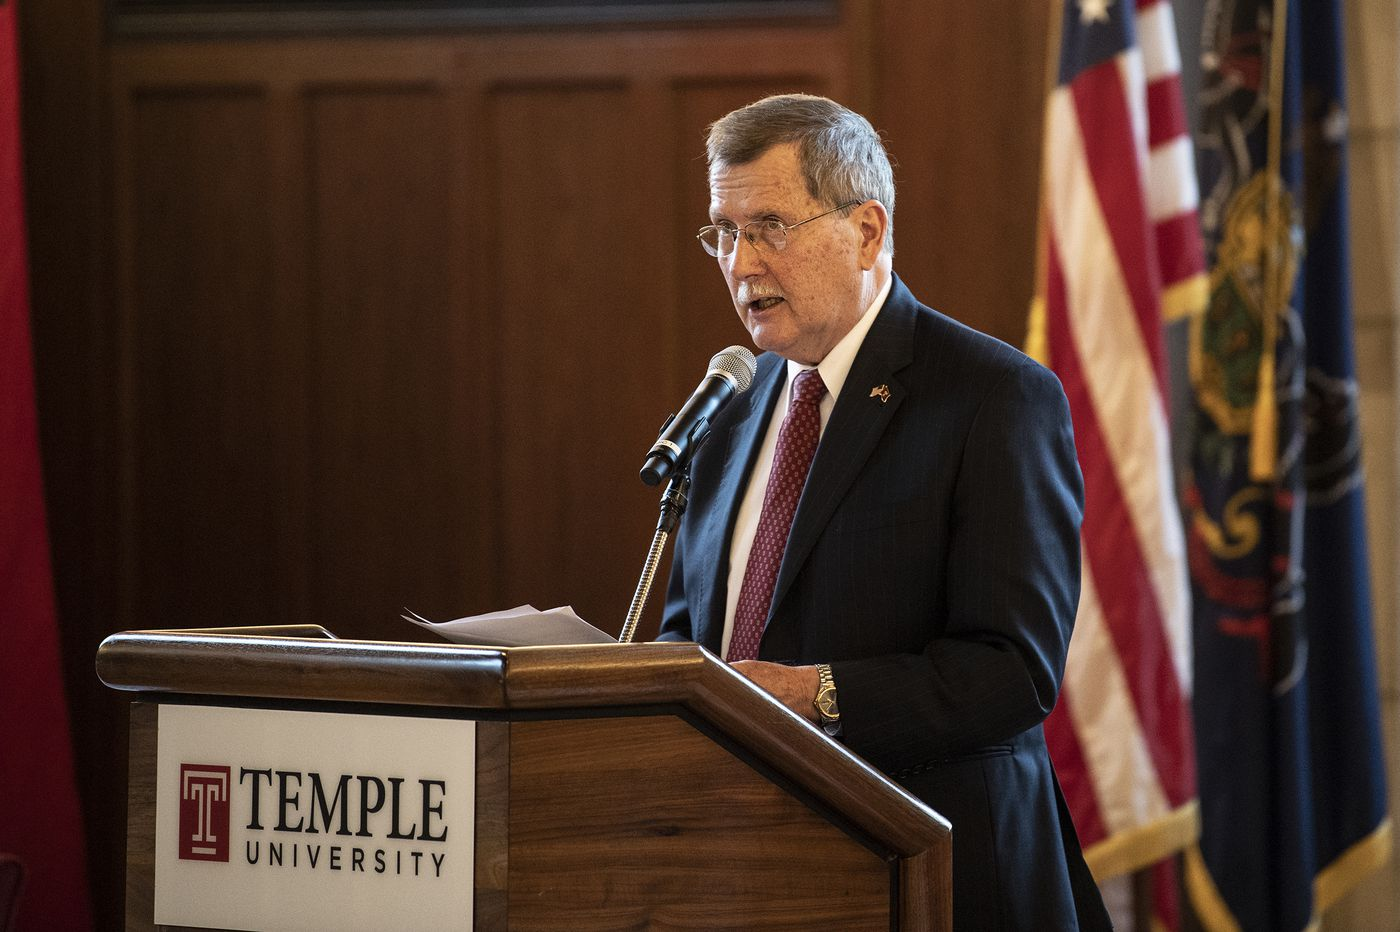 Temple University launches search for new president: Englert to leave after 45 years in 17 roles